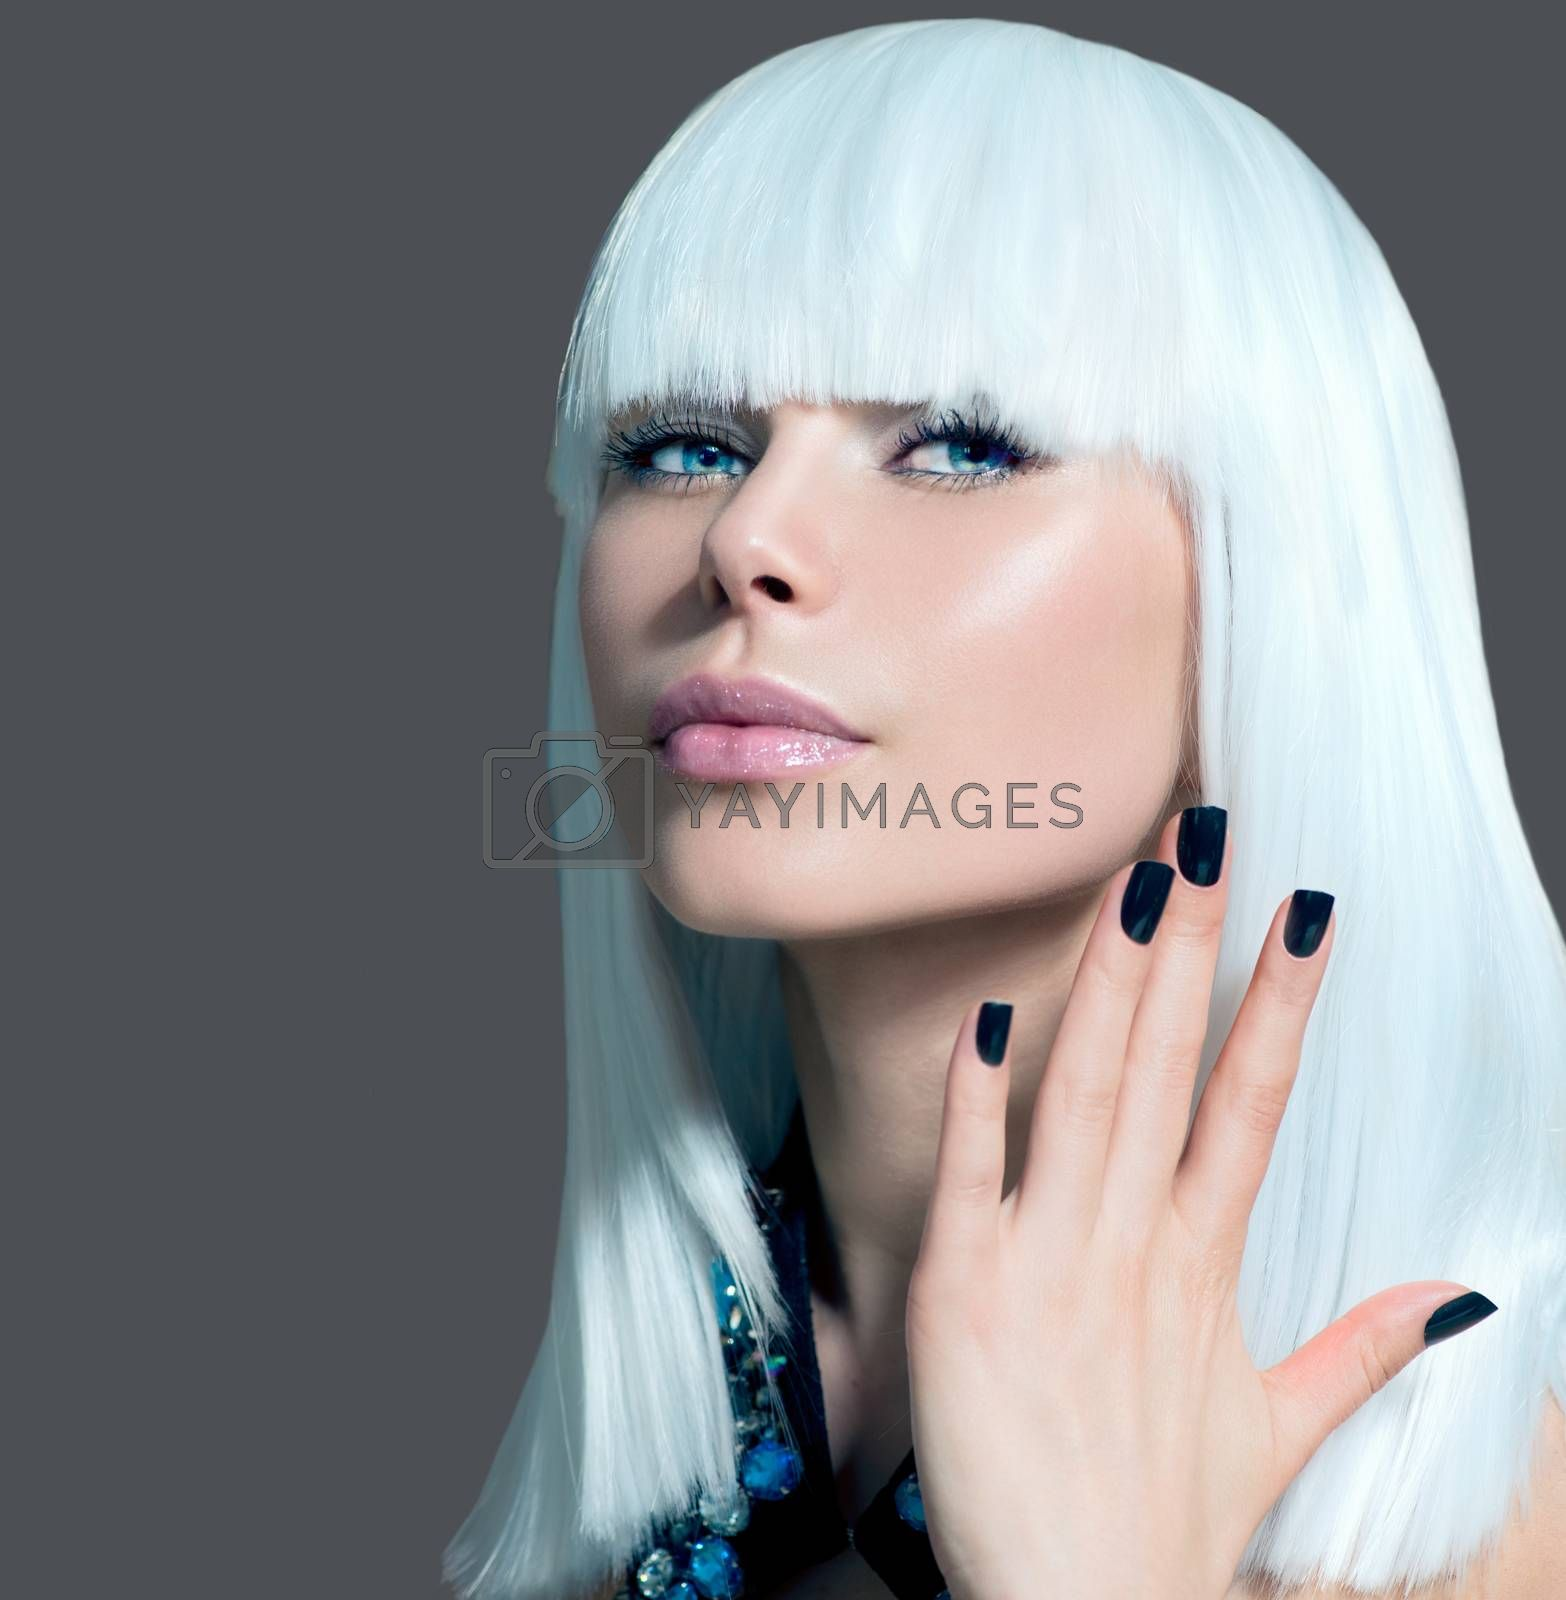 Vogue Style Model Portrait. Girl with White Hair and Black Nails by SubbotinaA